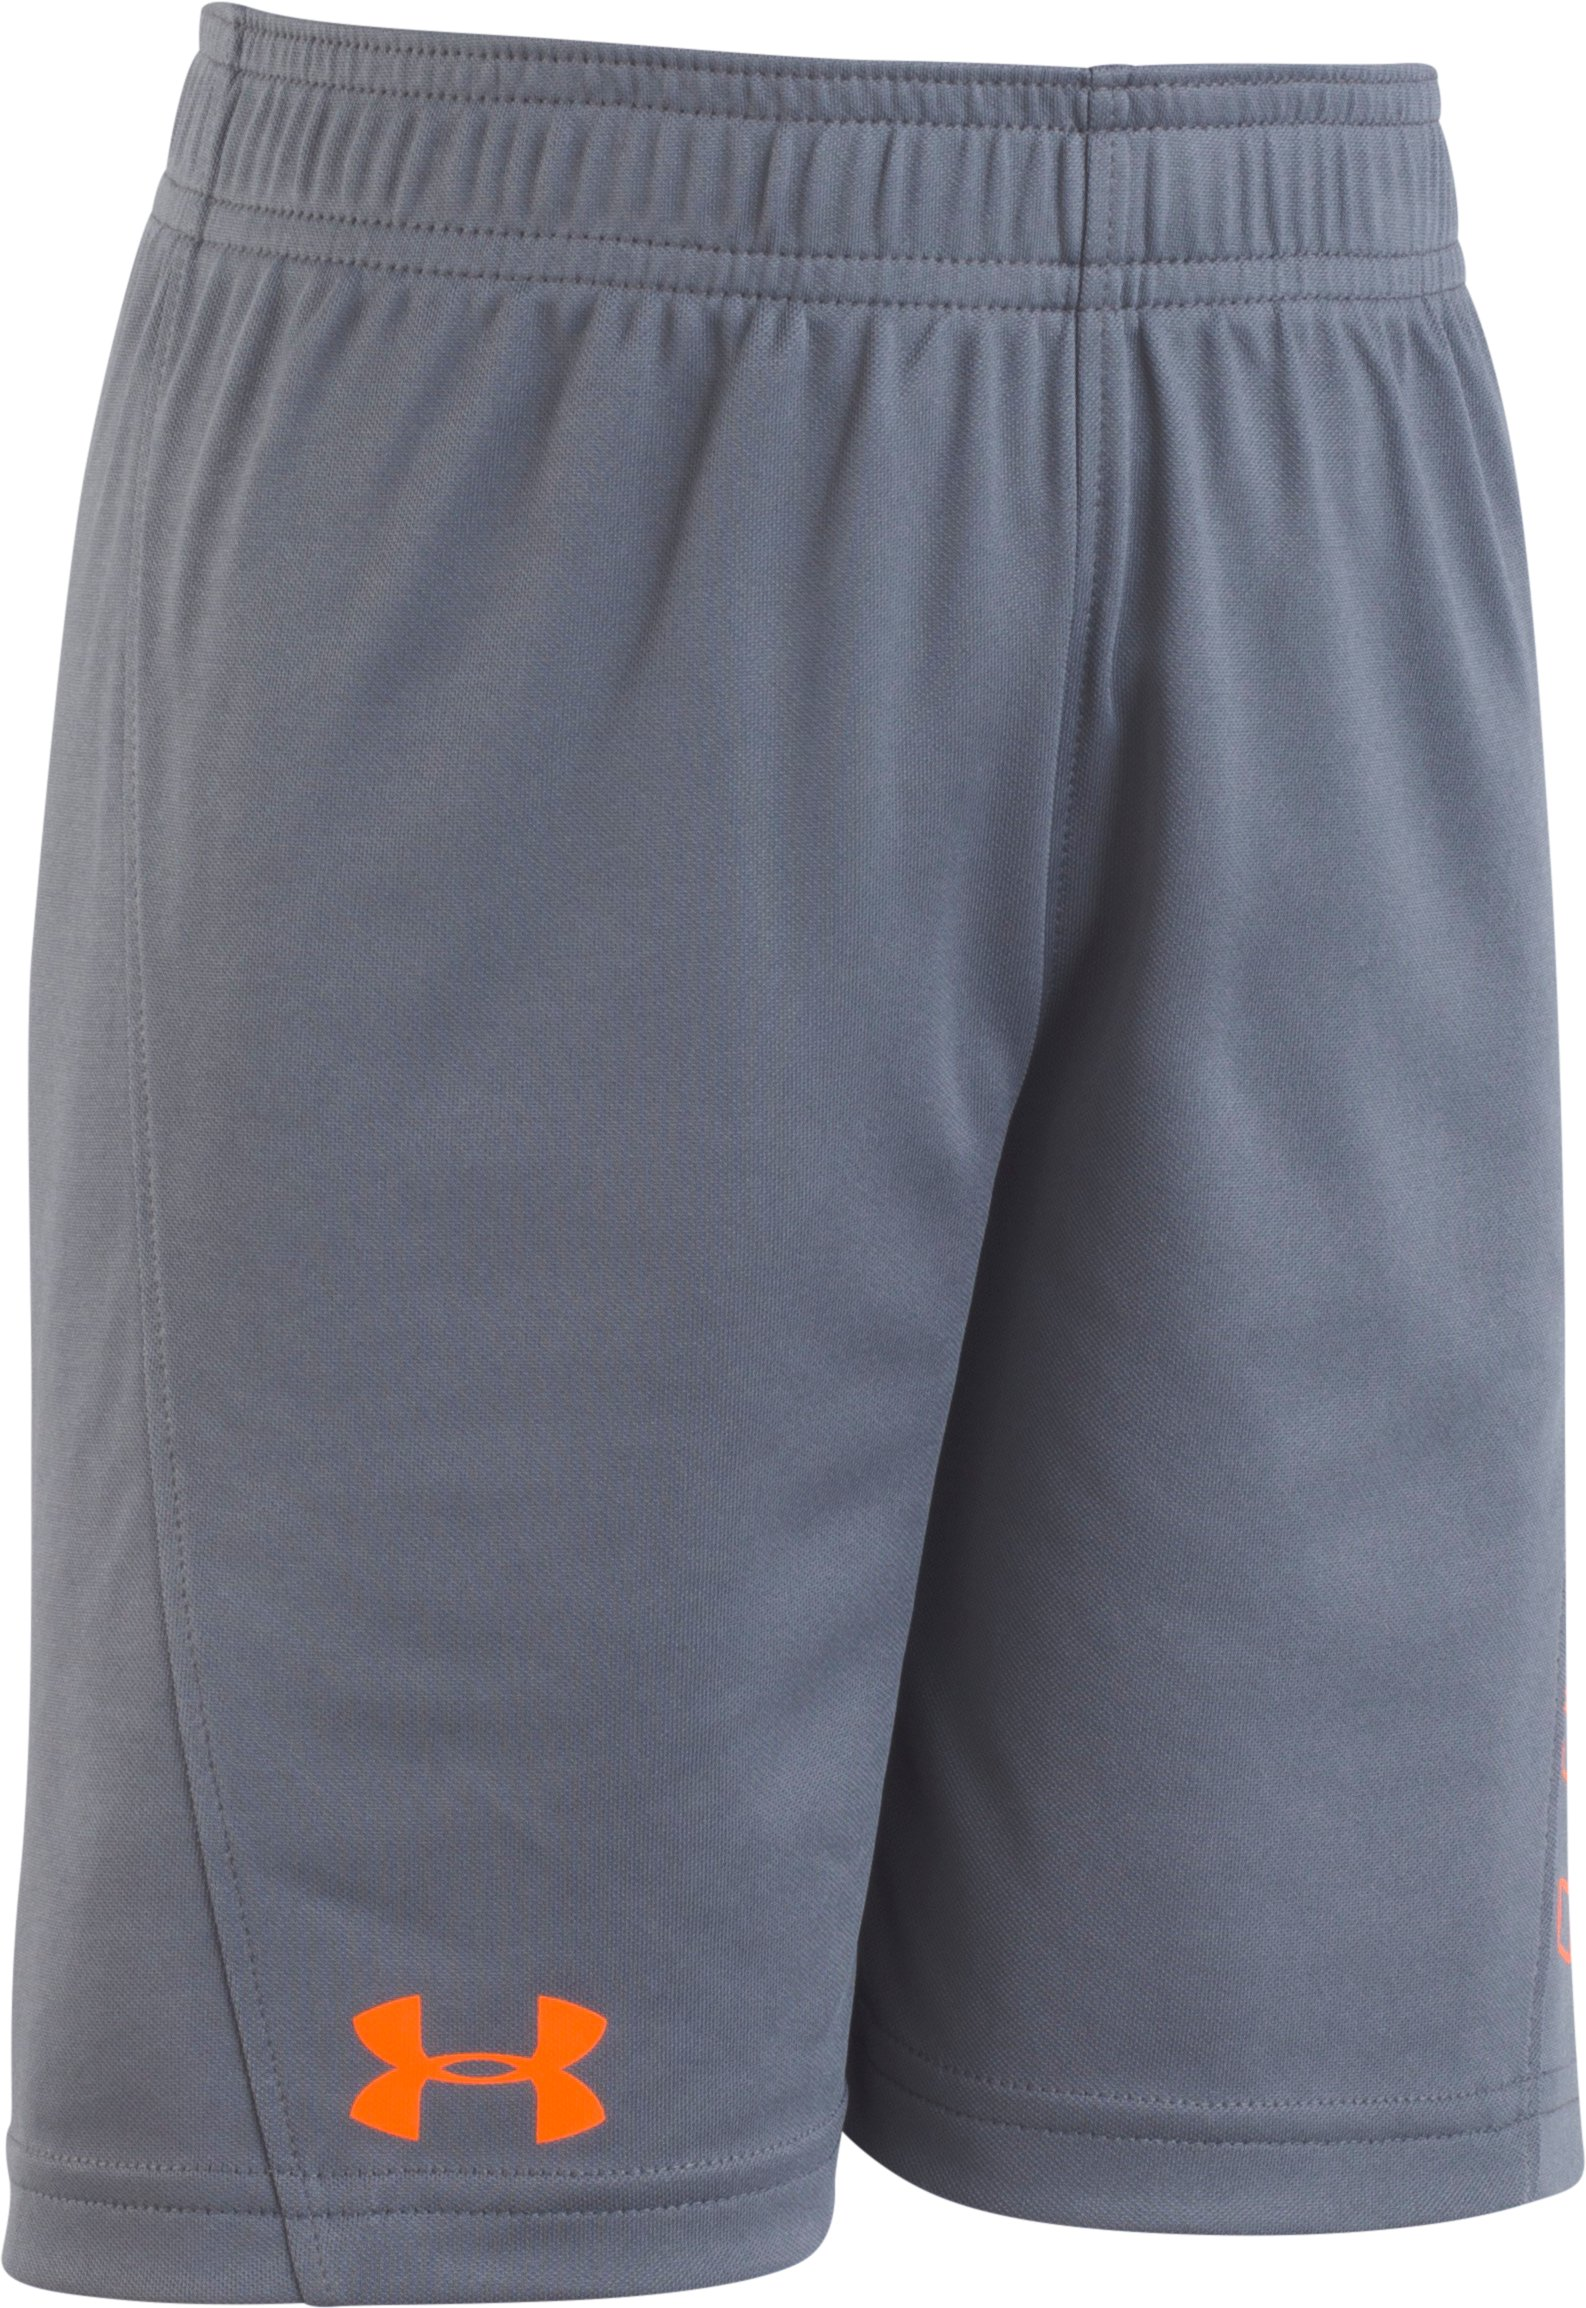 Boys' Pre-School UA Kick Off Short , Graphite